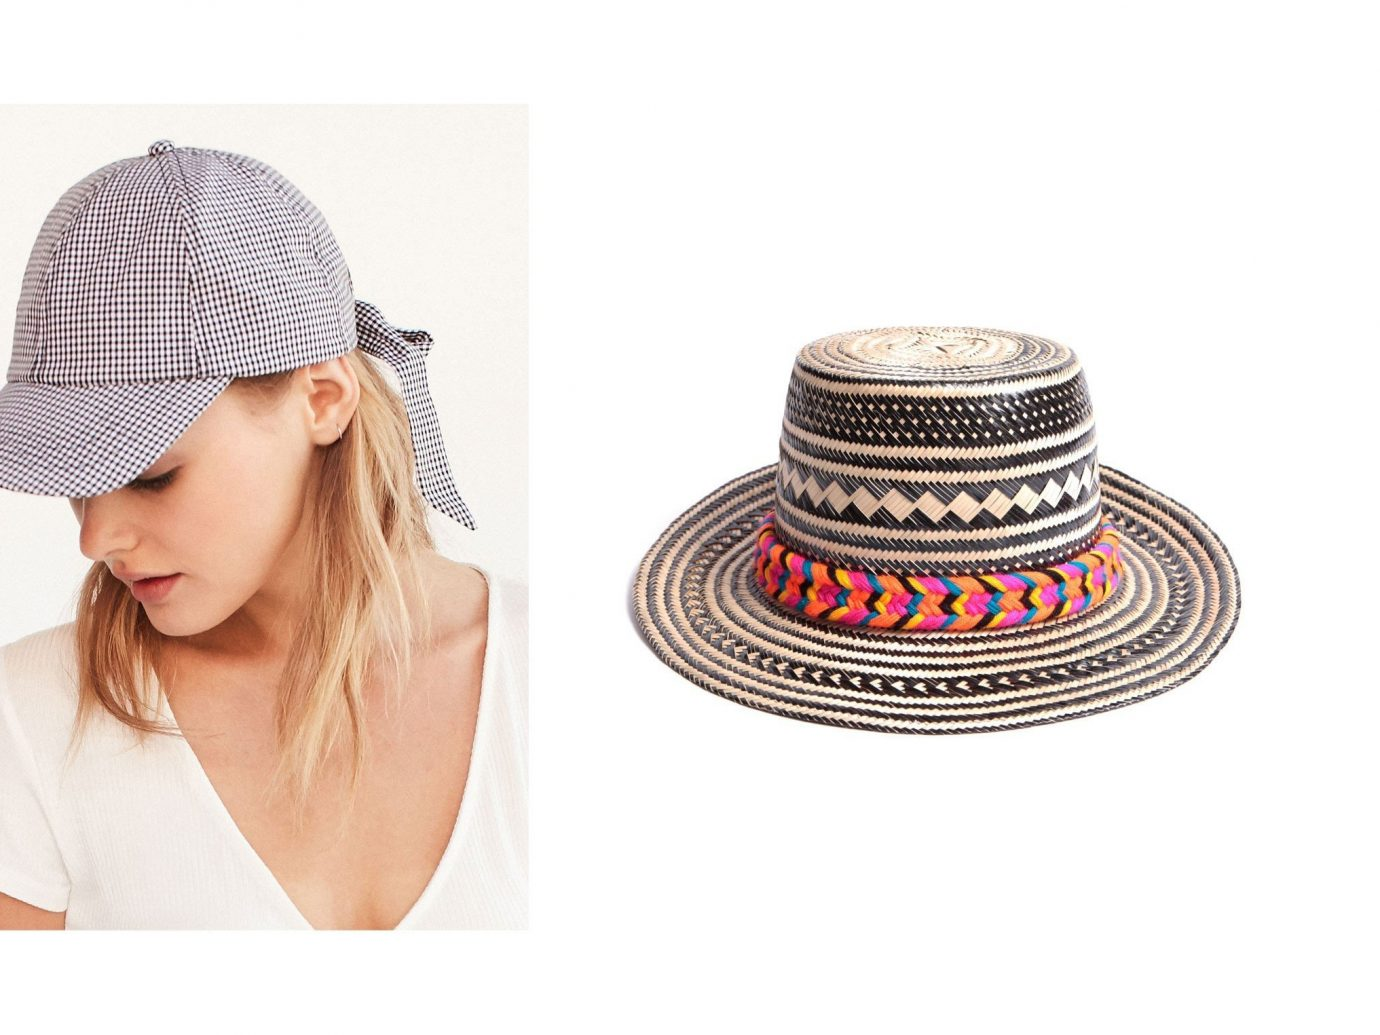 Style + Design person woman clothing fashion accessory hat cap headgear brand fedora sun hat